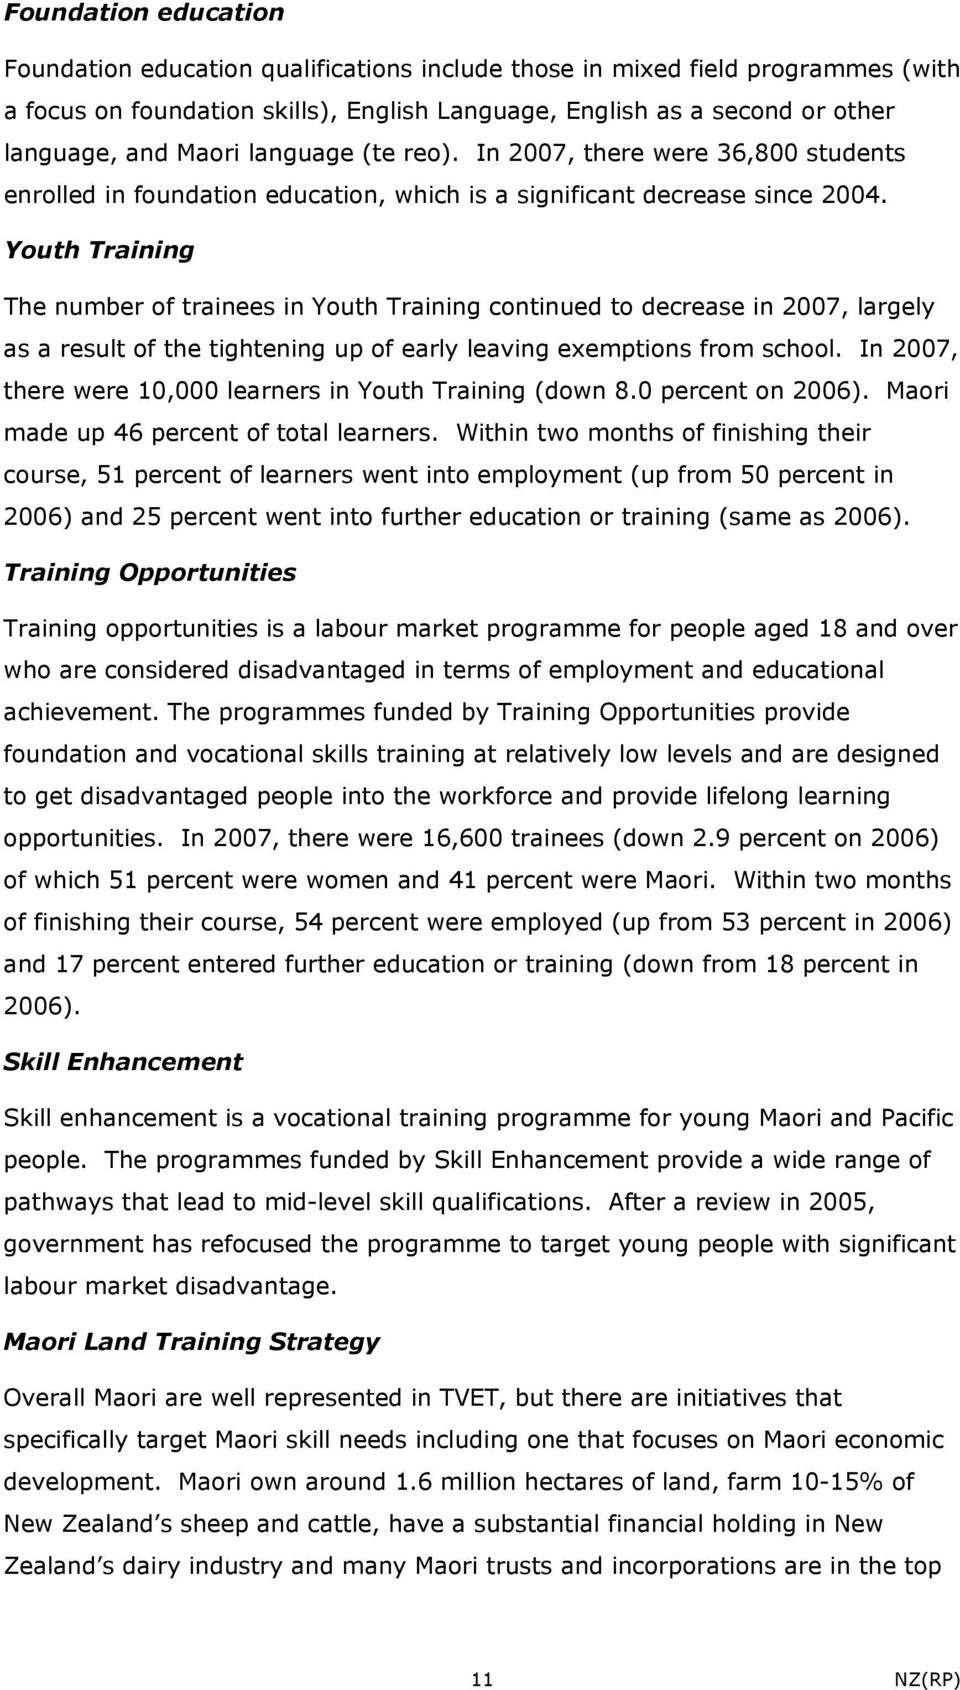 Youth Training The number of trainees in Youth Training continued to decrease in 2007, largely as a result of the tightening up of early leaving exemptions from school.